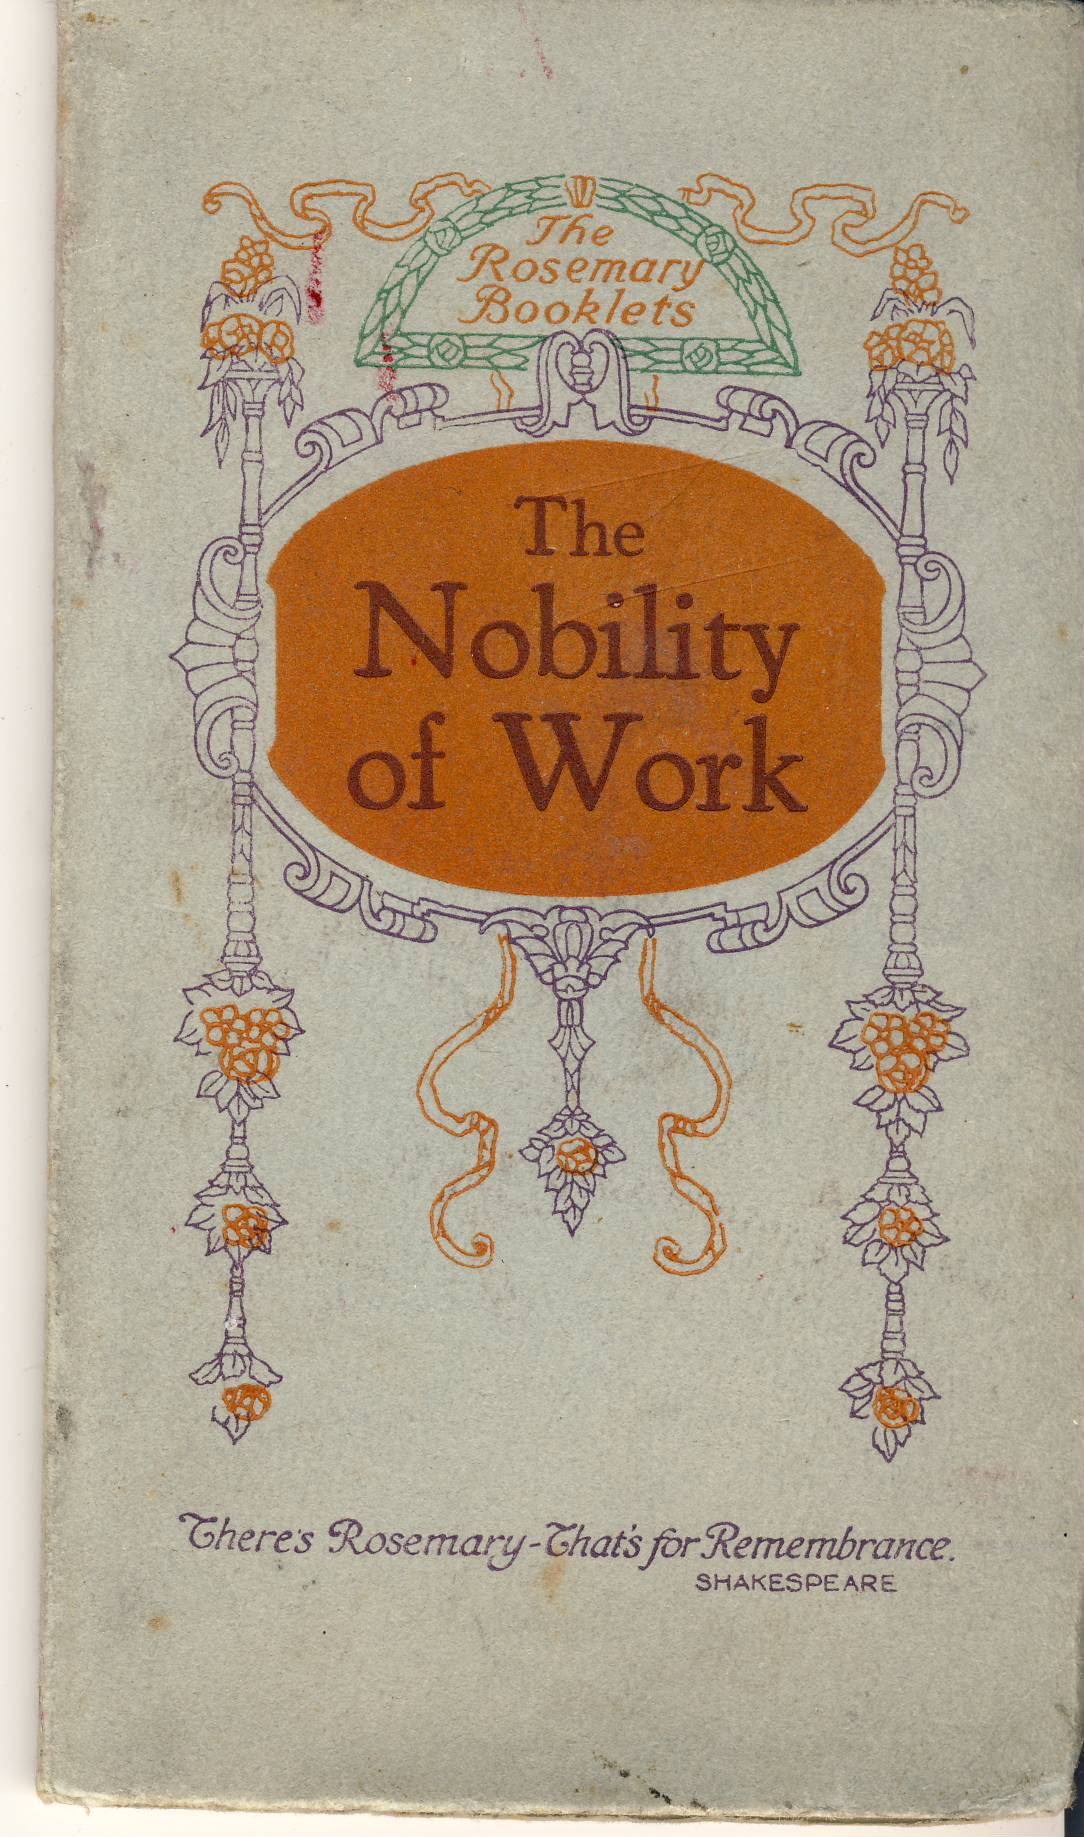 QUOTES The Nobility of Work circa 1920s vintage Rosemary booklet refS5 measures approx  15cm x  9cm 48 pages - pre-owned in good condition. Printed by Shadwell and Son Manchester